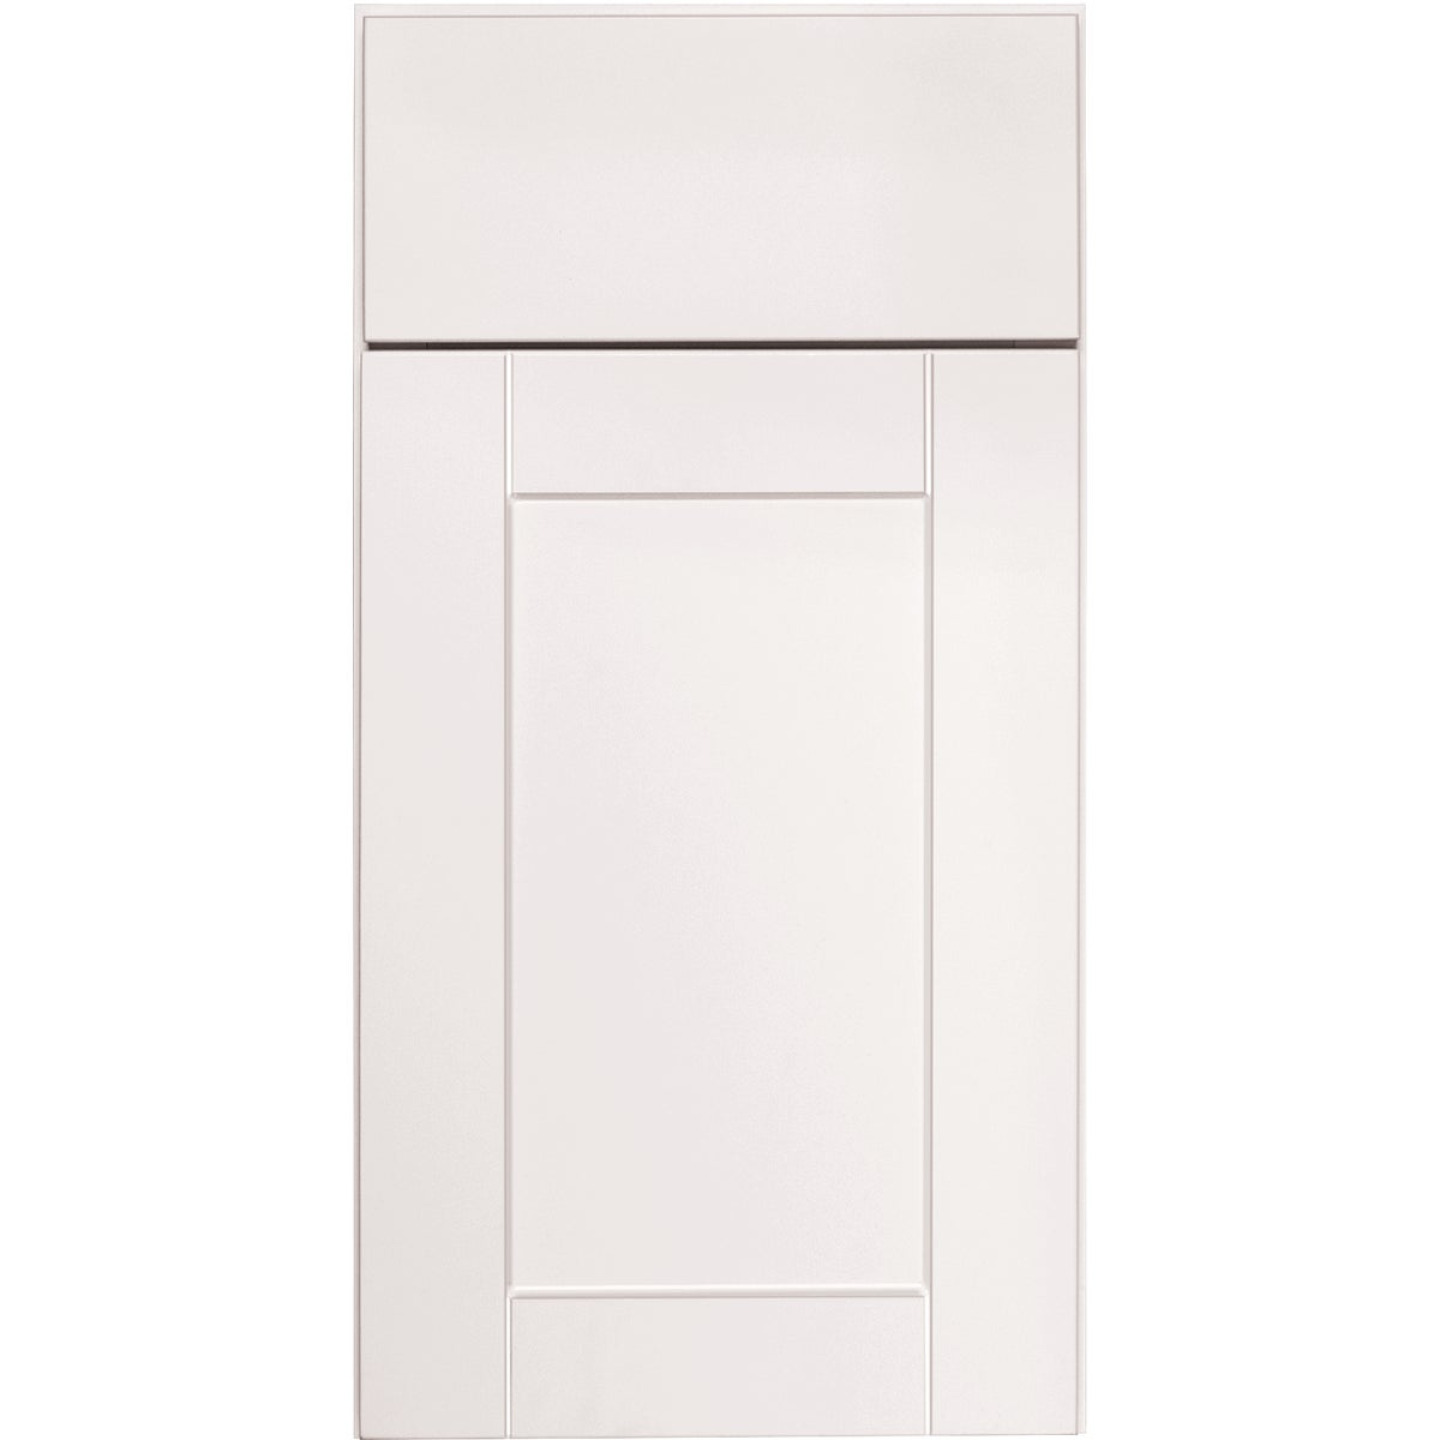 Continental Cabinets Andover Shaker 36 In. W x 30 In. H x 12 In. D White Thermofoil Wall Kitchen Cabinet Image 4